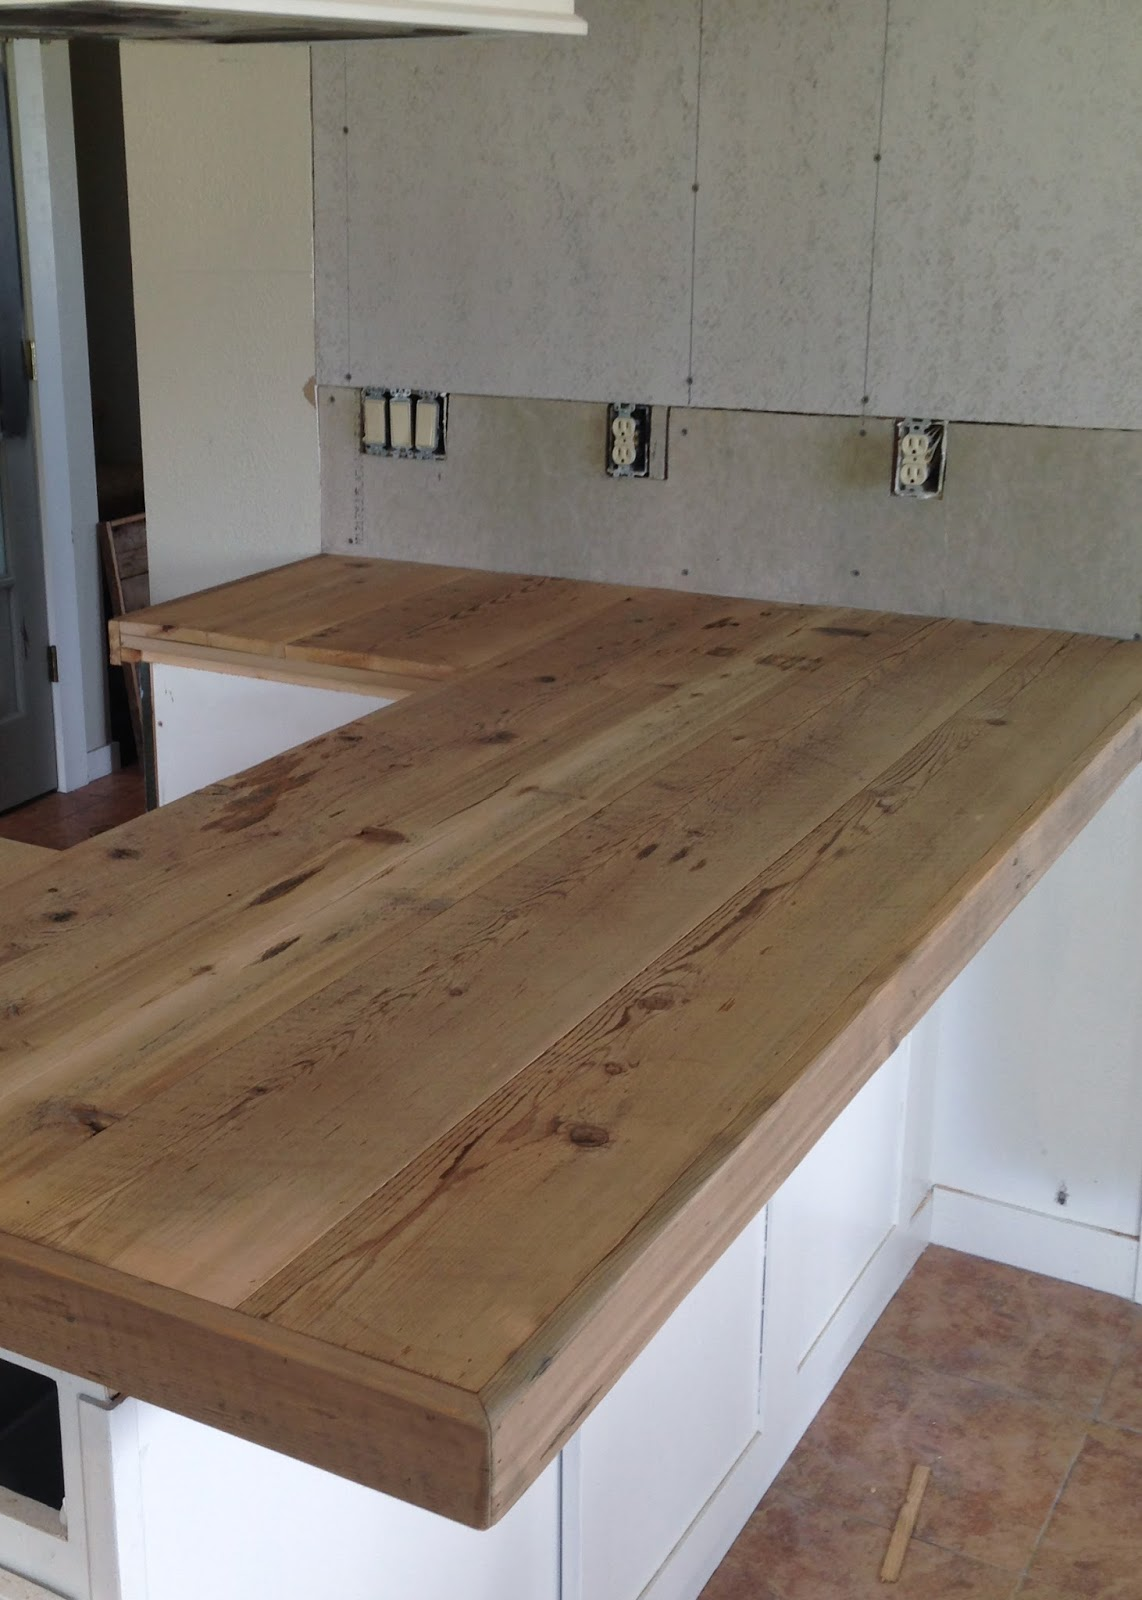 wood kitchen counters vintage sink diy reclaimed countertop averie lane adding trim boards along edge